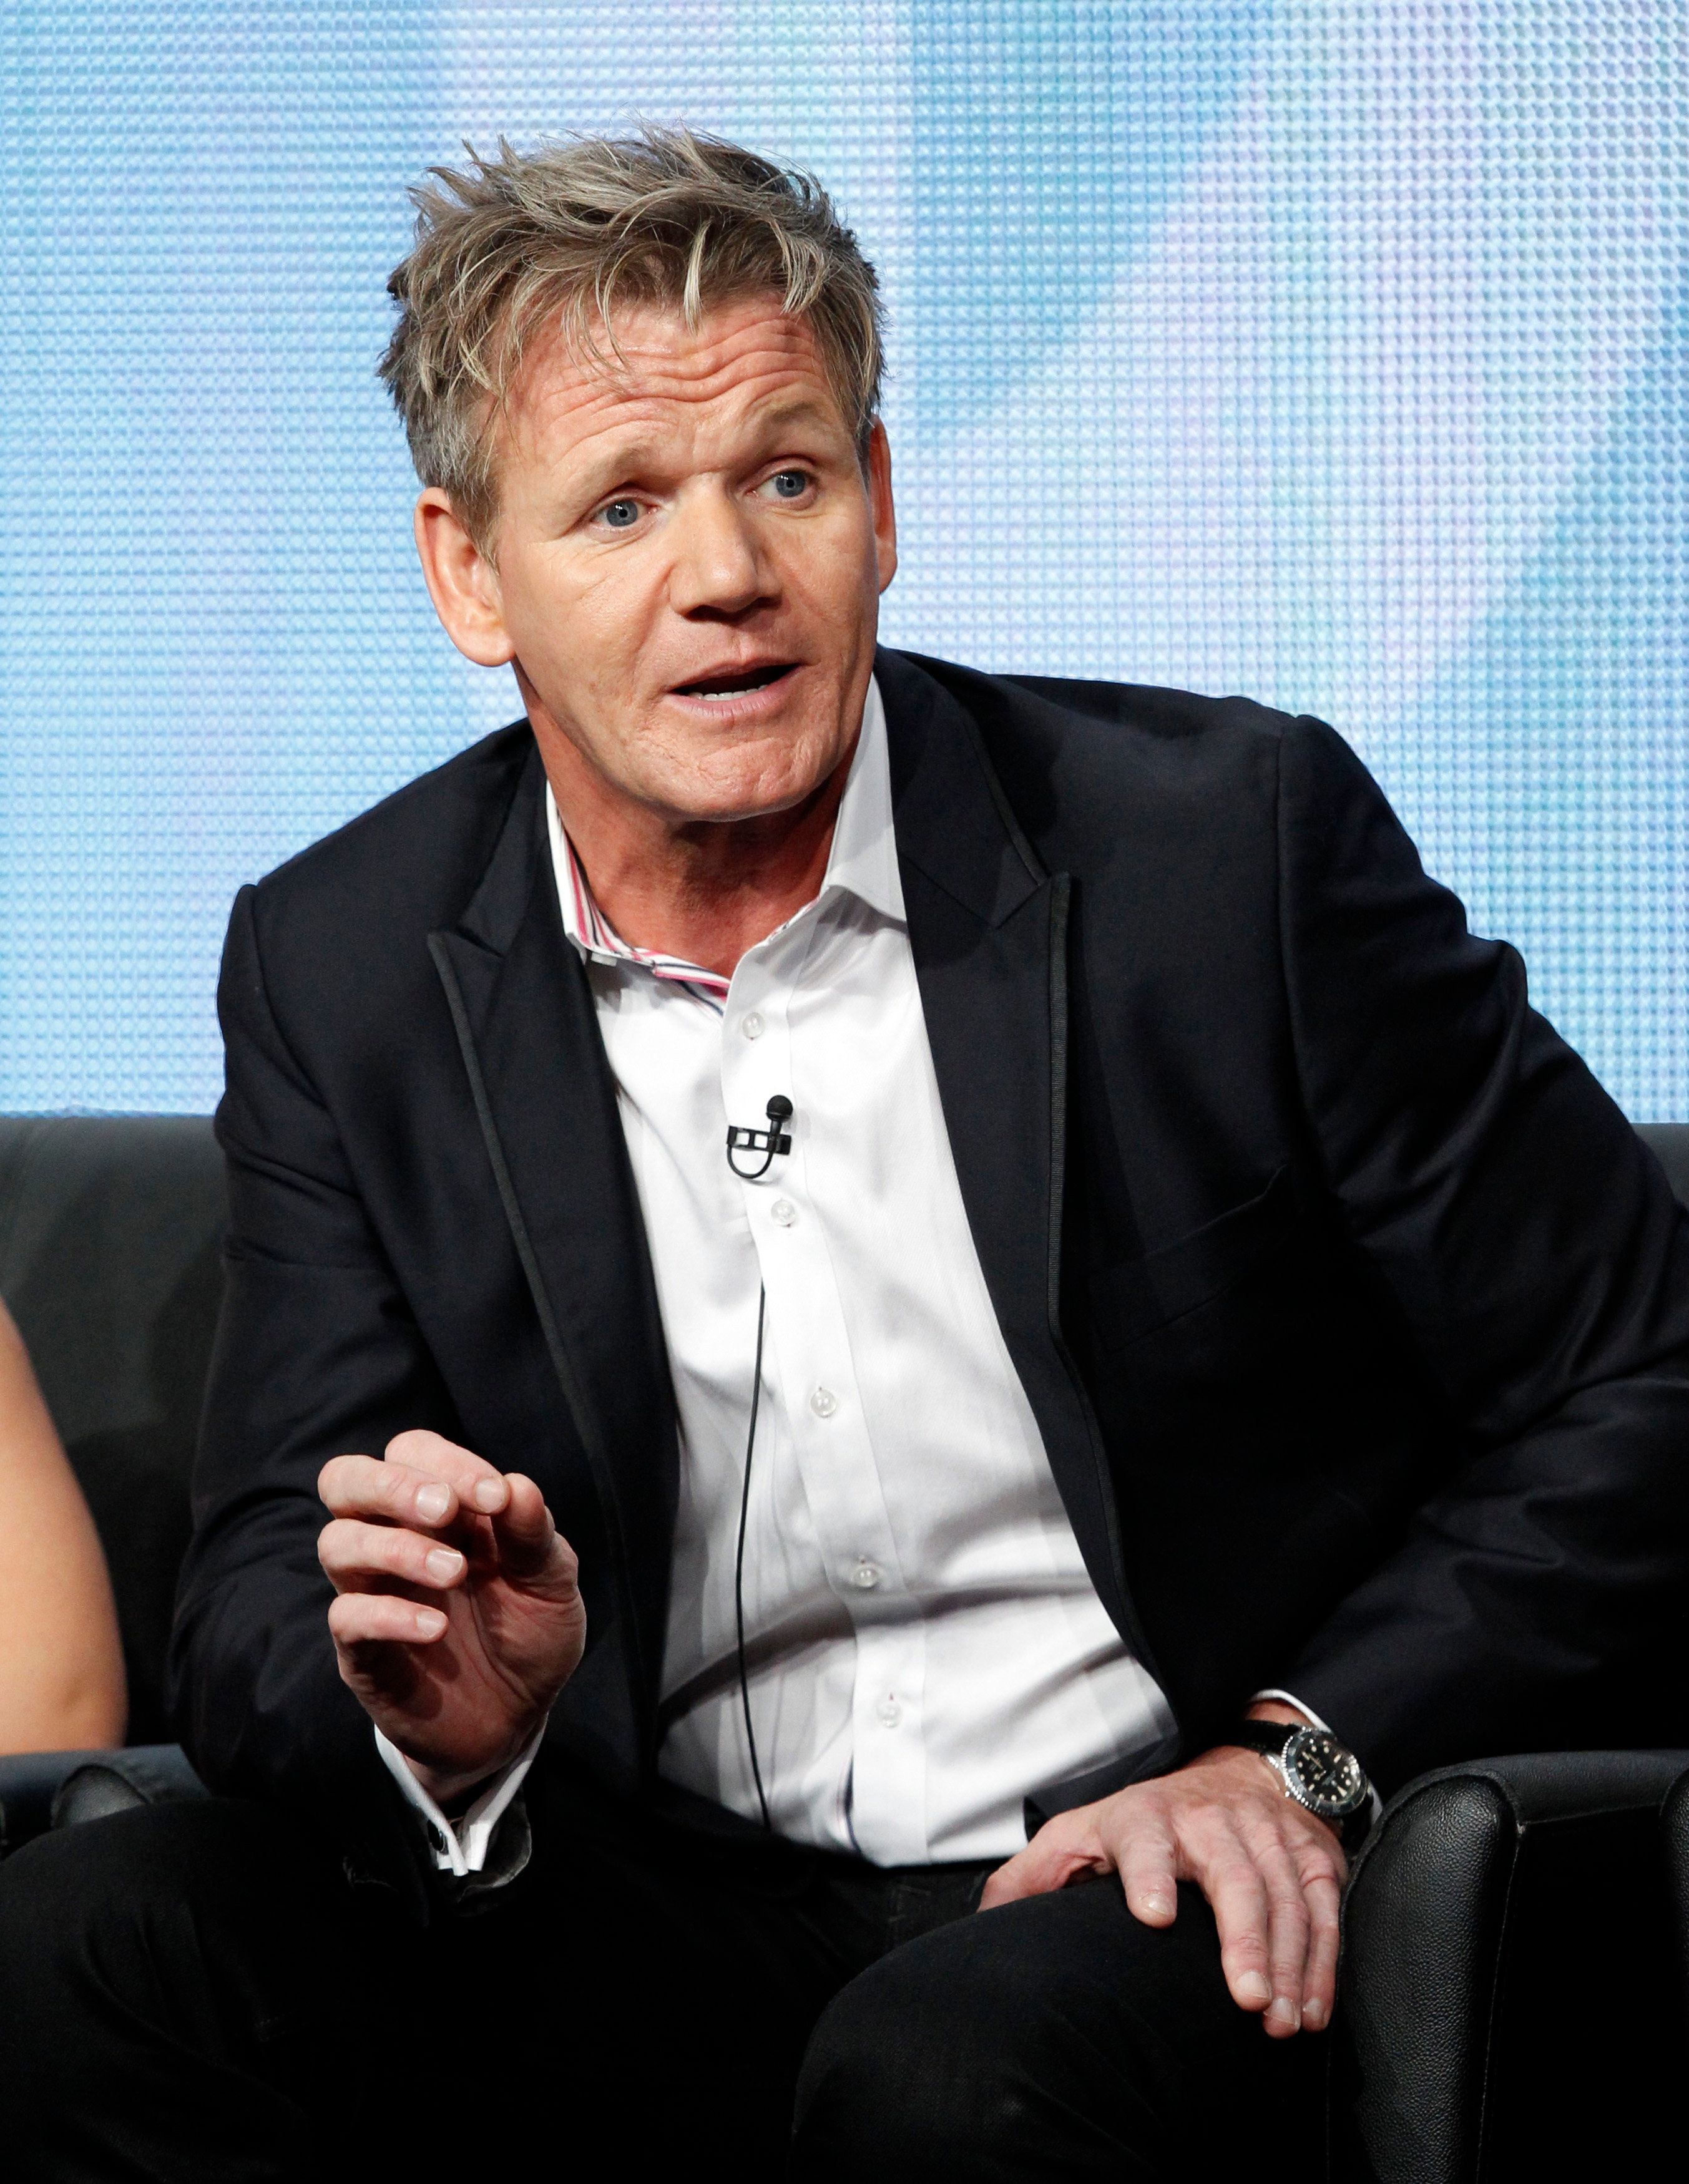 """Judge and executive producer Gordon Ramsay speaks at a panel for the television show """"Master Chef Junior"""" during the Fox portion of the Television Critics Association Summer press tour in Beverly Hills, California August 1, 2013.   REUTERS/Mario Anzuoni  (UNITED STATES - Tags: ENTERTAINMENT)"""